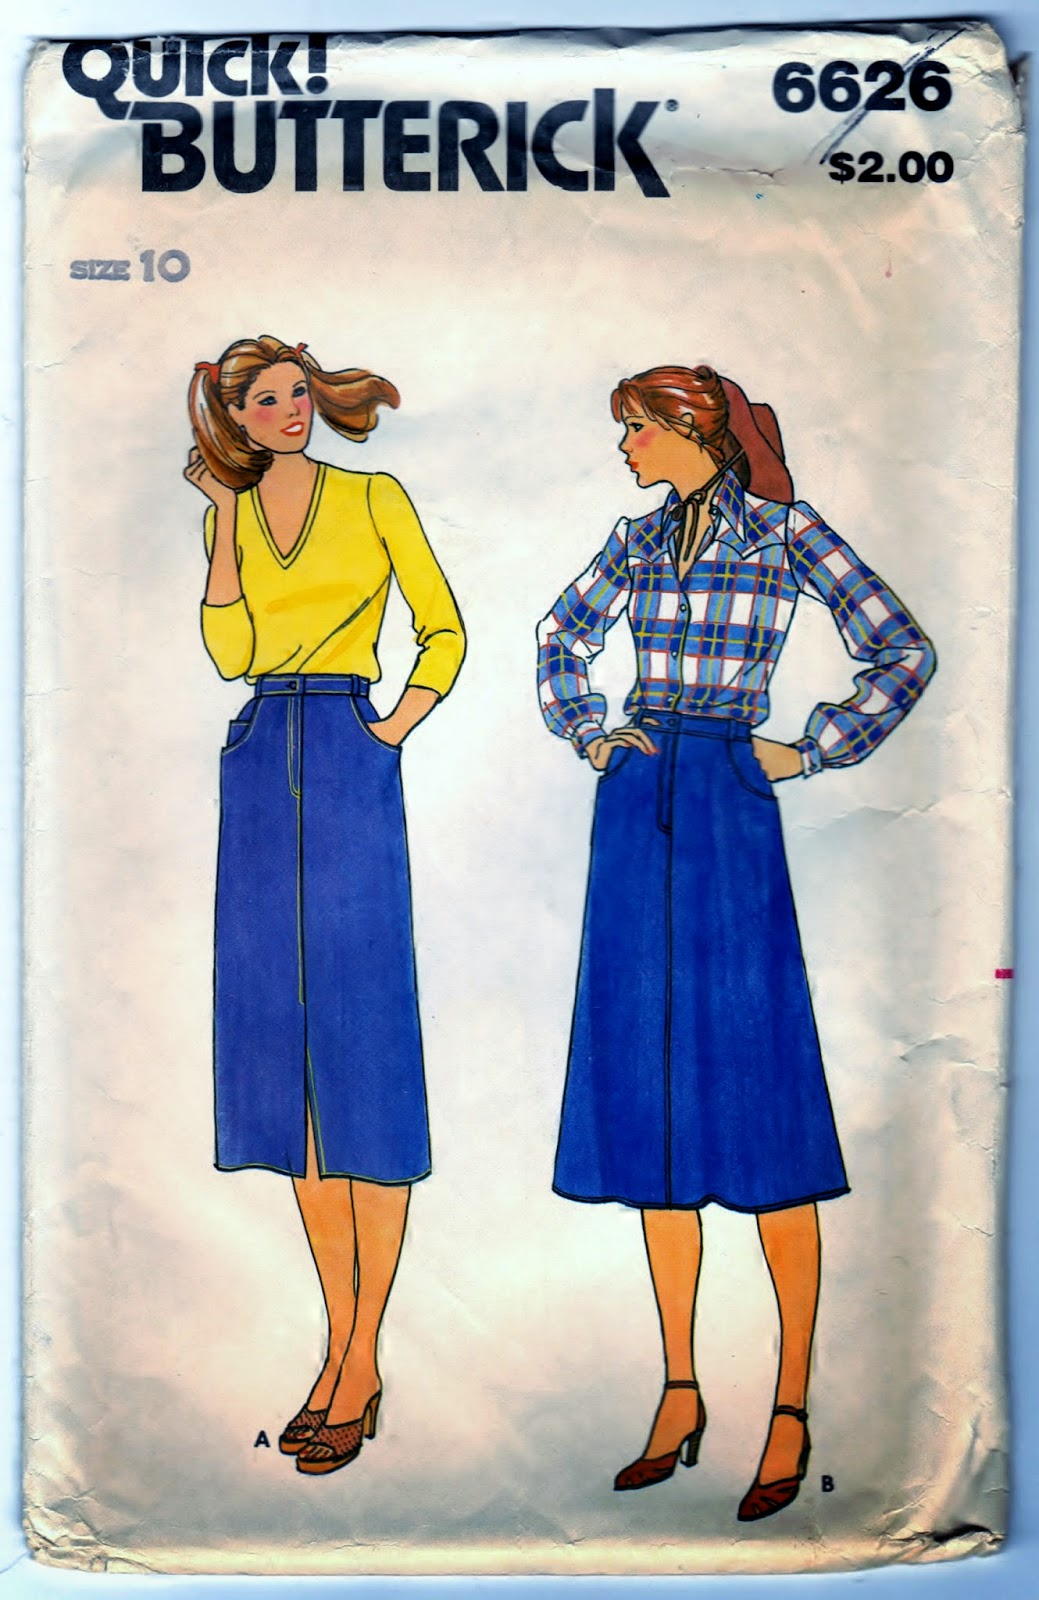 https://www.etsy.com/listing/219070346/butterick-6626-sewing-pattern-quick